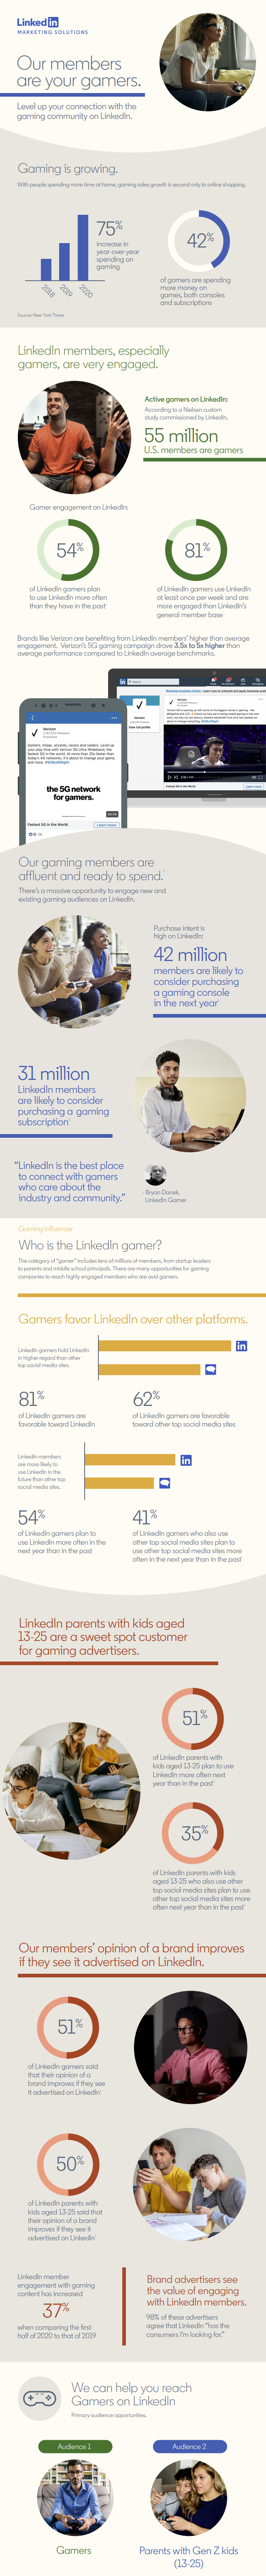 LinkedIn gaming research